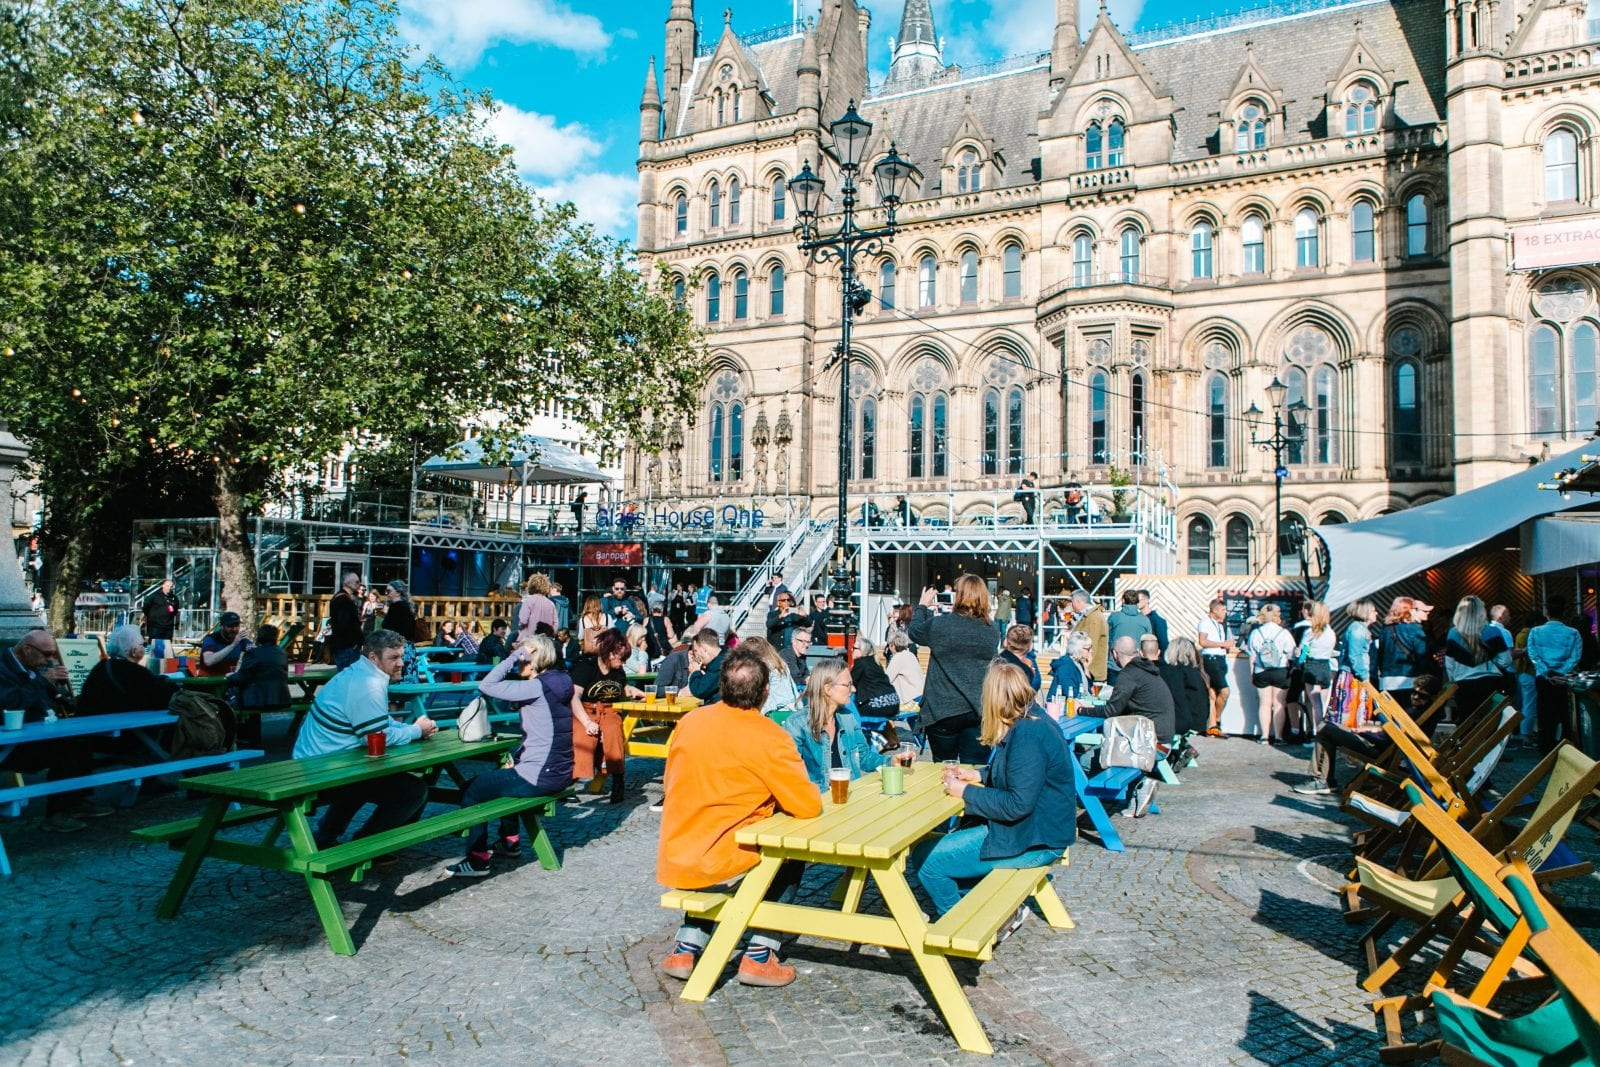 Manchester International Festival releases free music lineup for Festival Square, The Manc